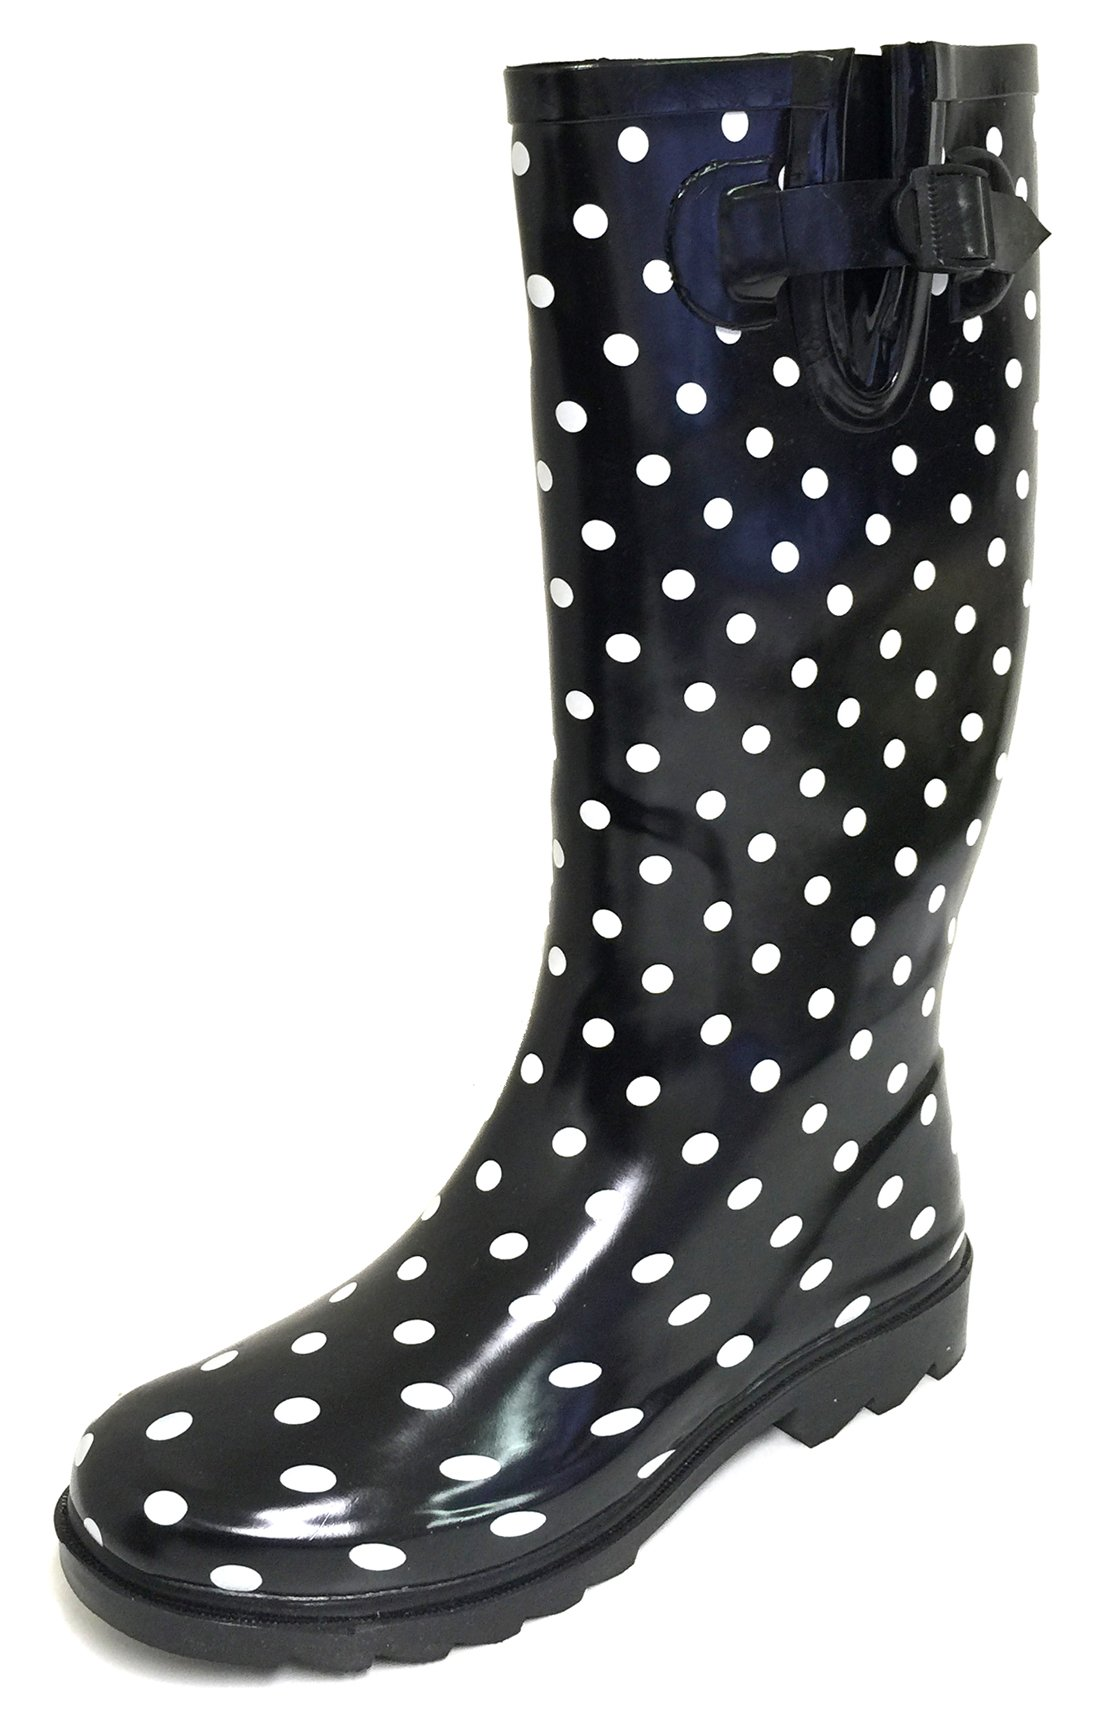 G4U Women's Rain Boots Multiple Styles Color Mid Calf Wellies Buckle Fashion Rubber Knee High Snow Shoes (8 B(M) US, Black Polka Dots)